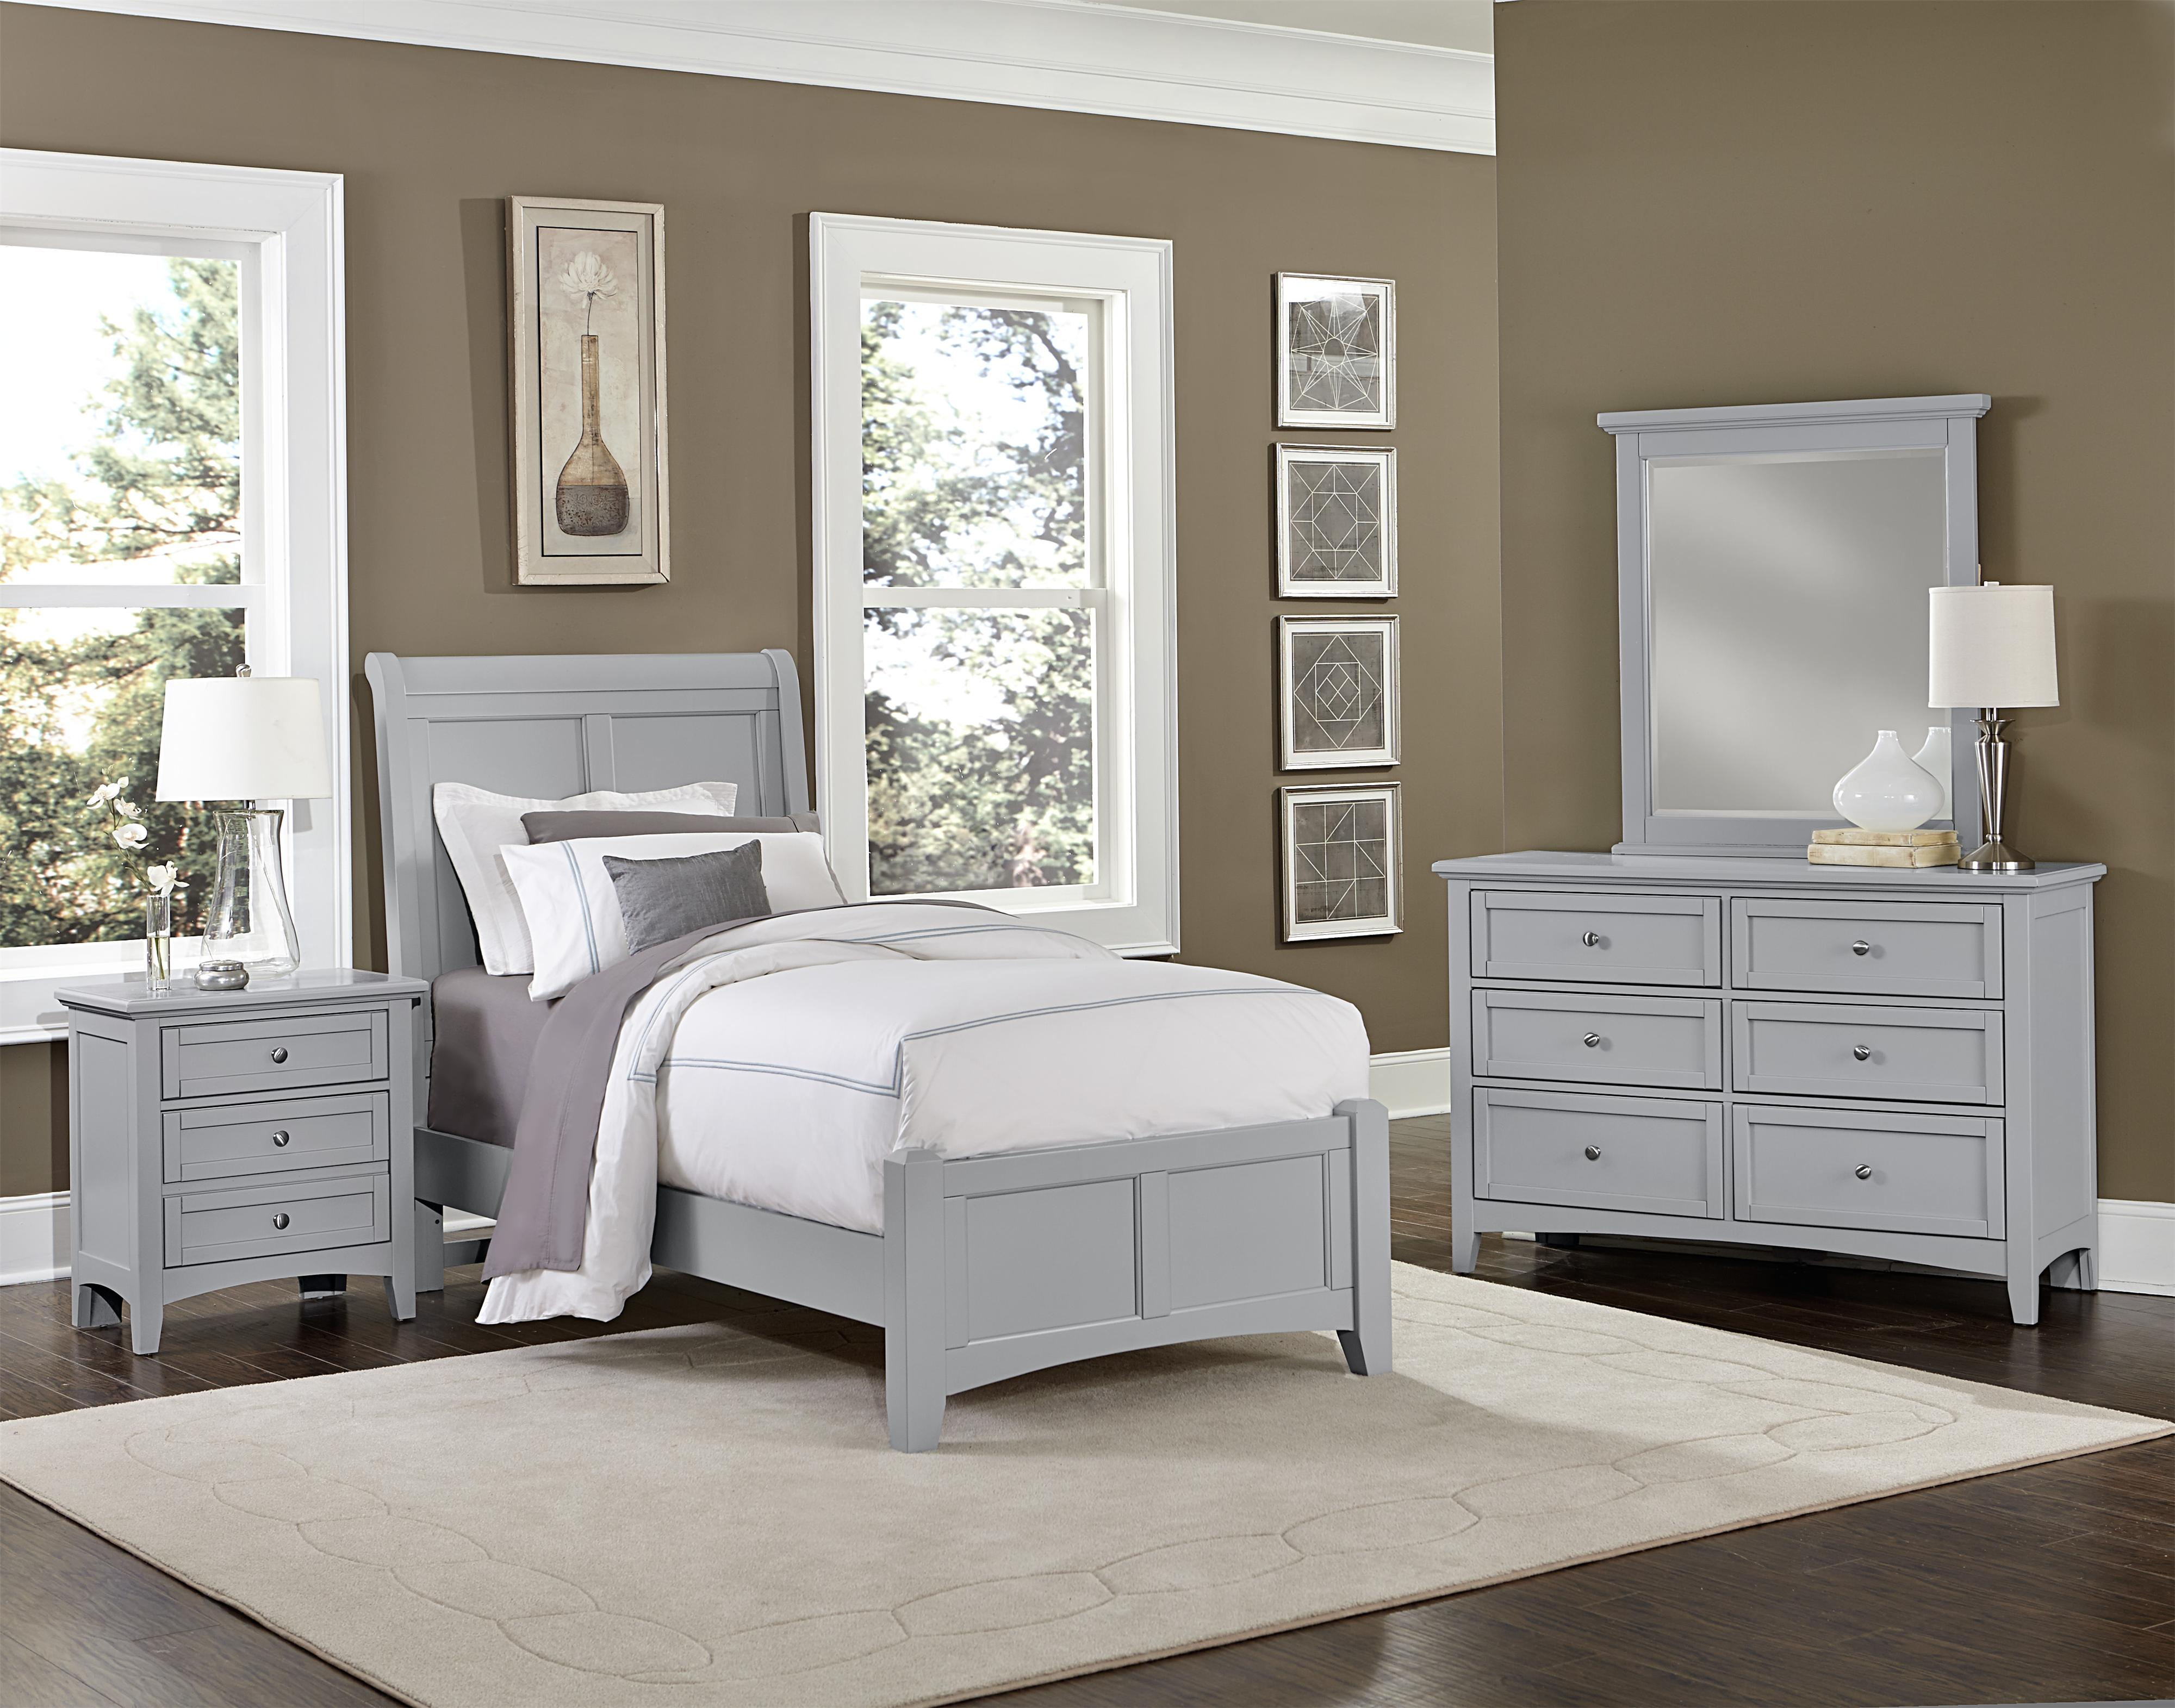 vaughan bassett bonanza twin sleigh bed with low profile footboard knight furniture mattress. Black Bedroom Furniture Sets. Home Design Ideas